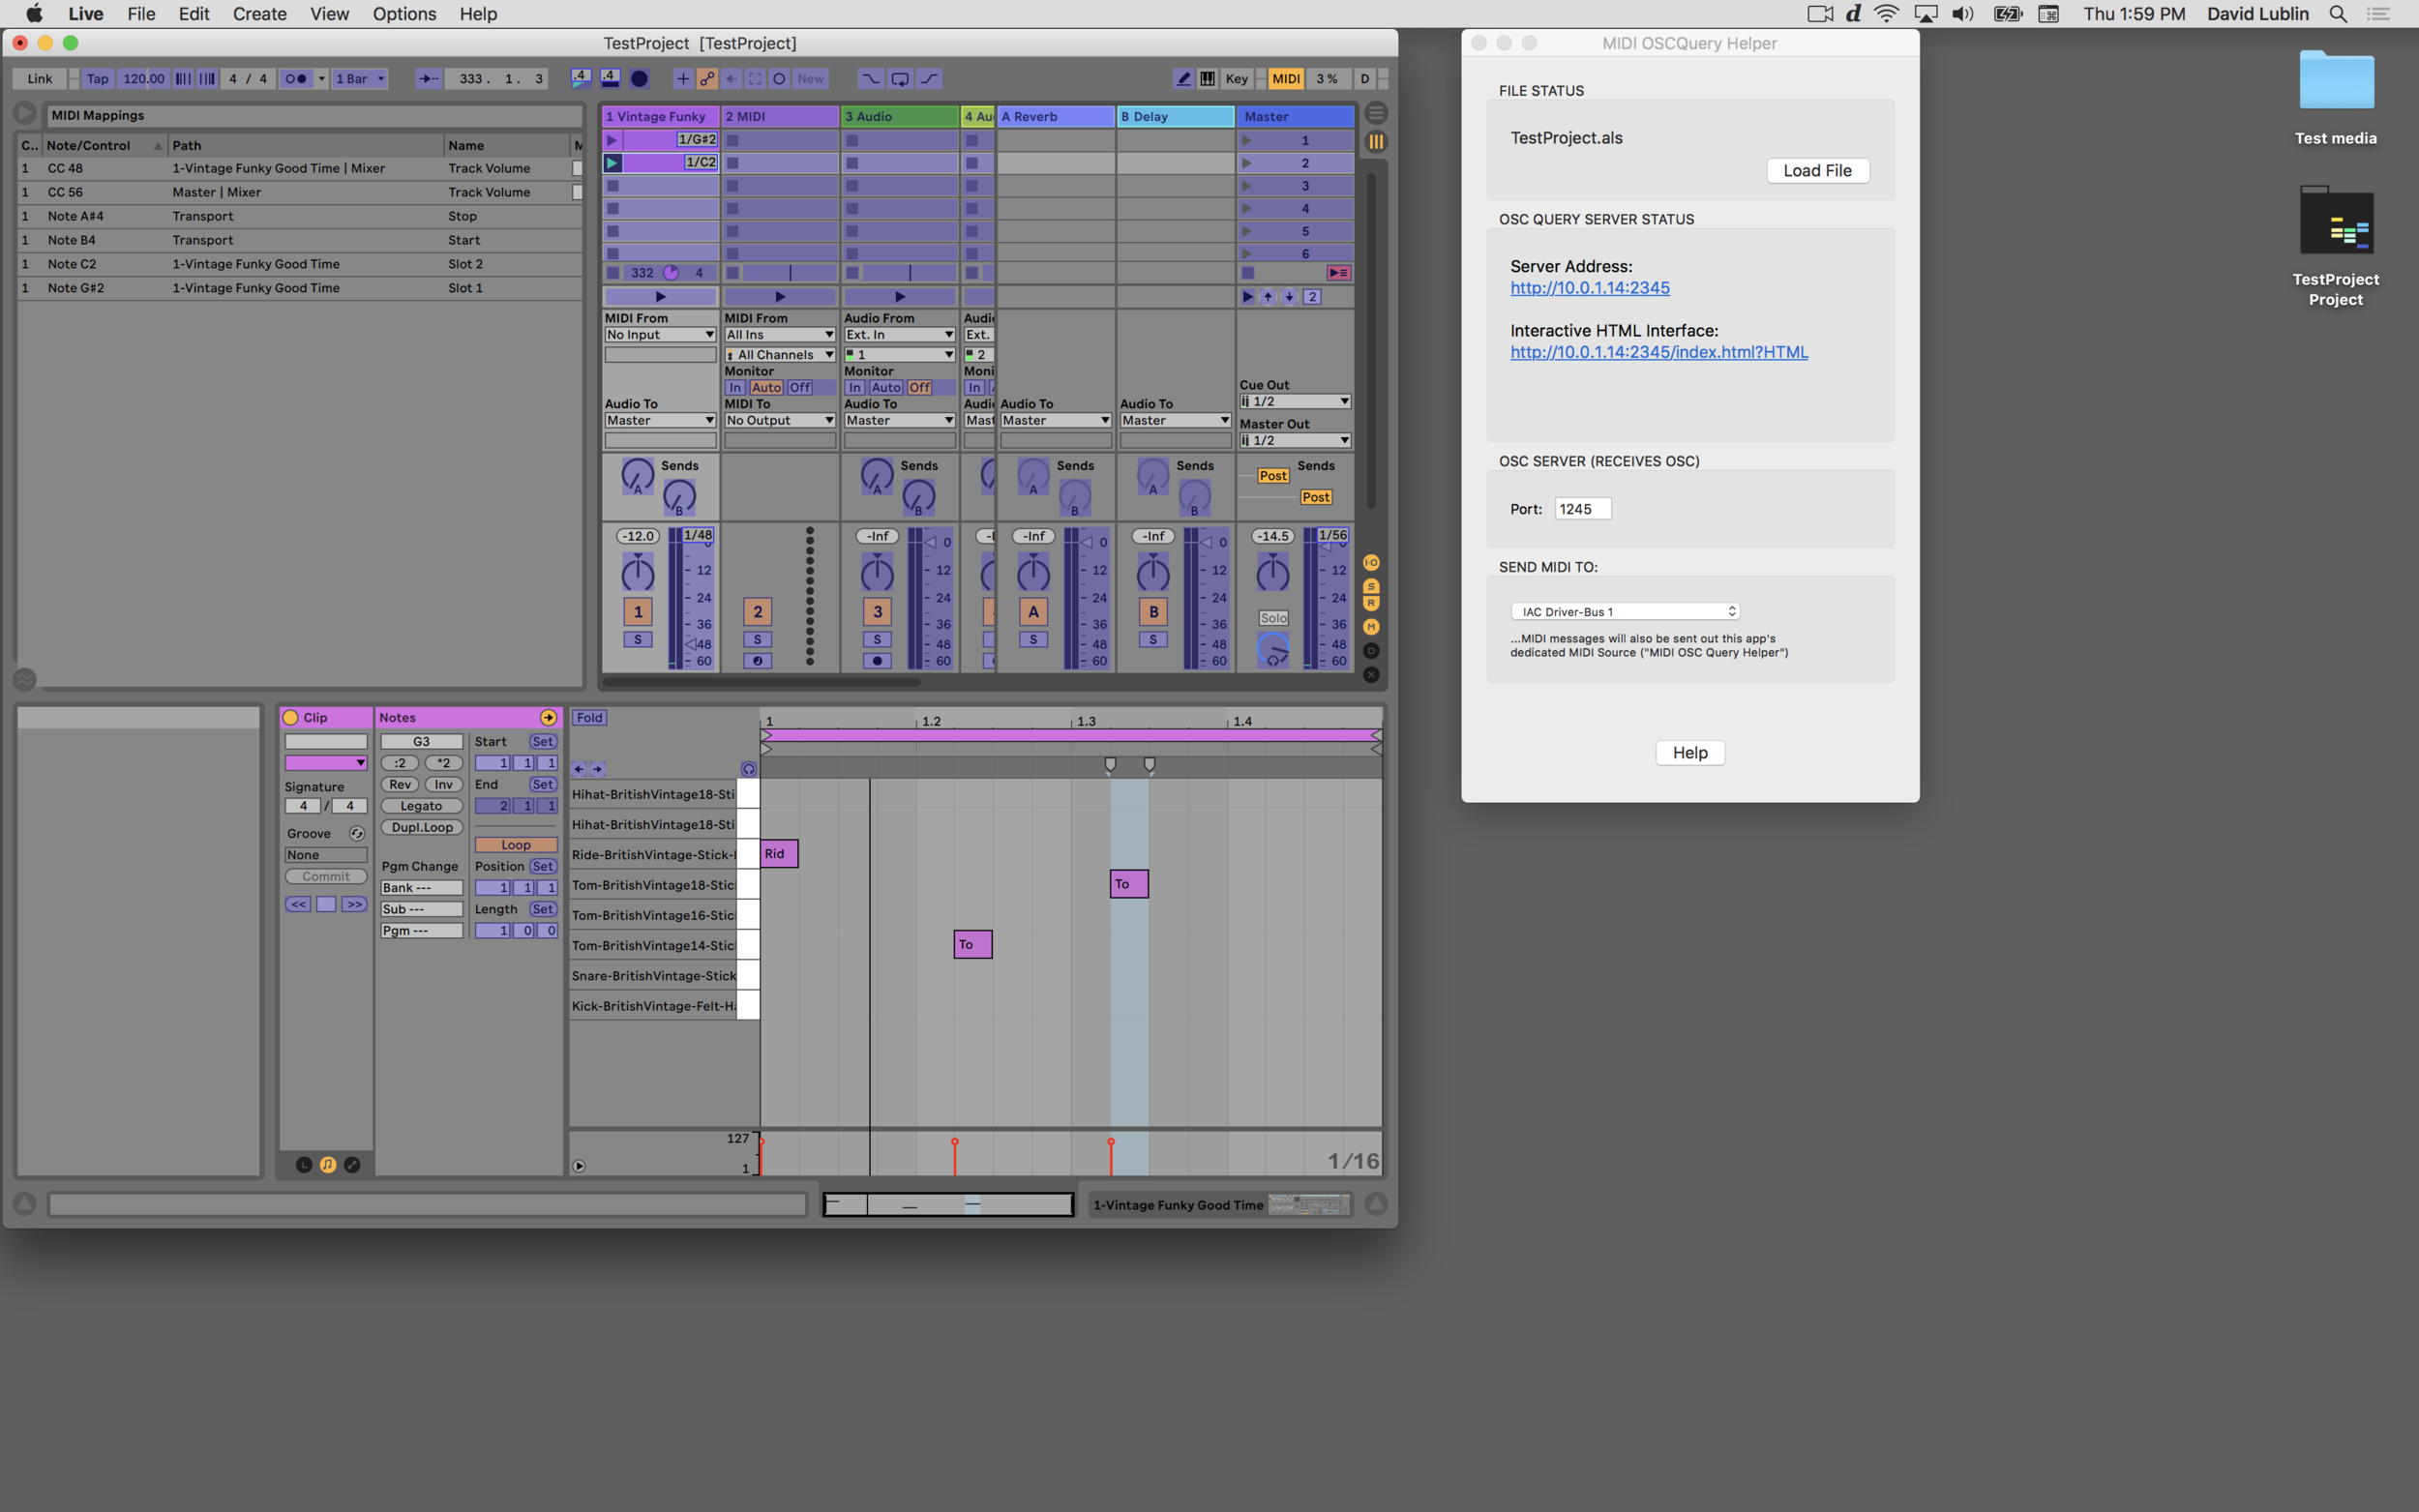 How to control an Ableton Live project from a web browser